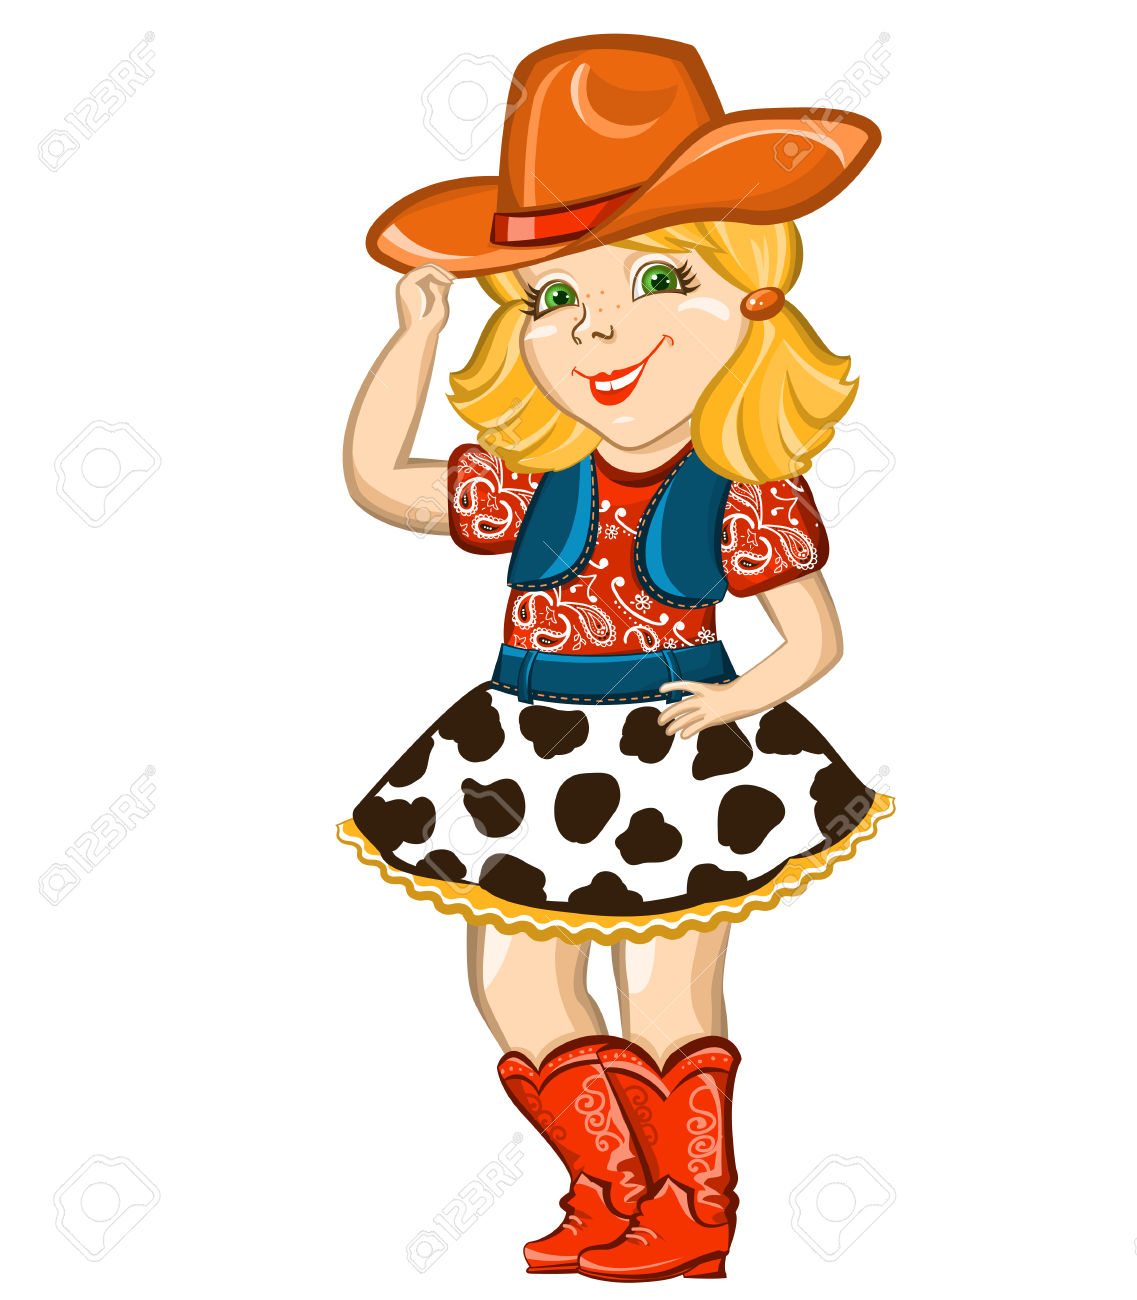 cartoon cowgirl Pictures, Images & Photos | Photobucket